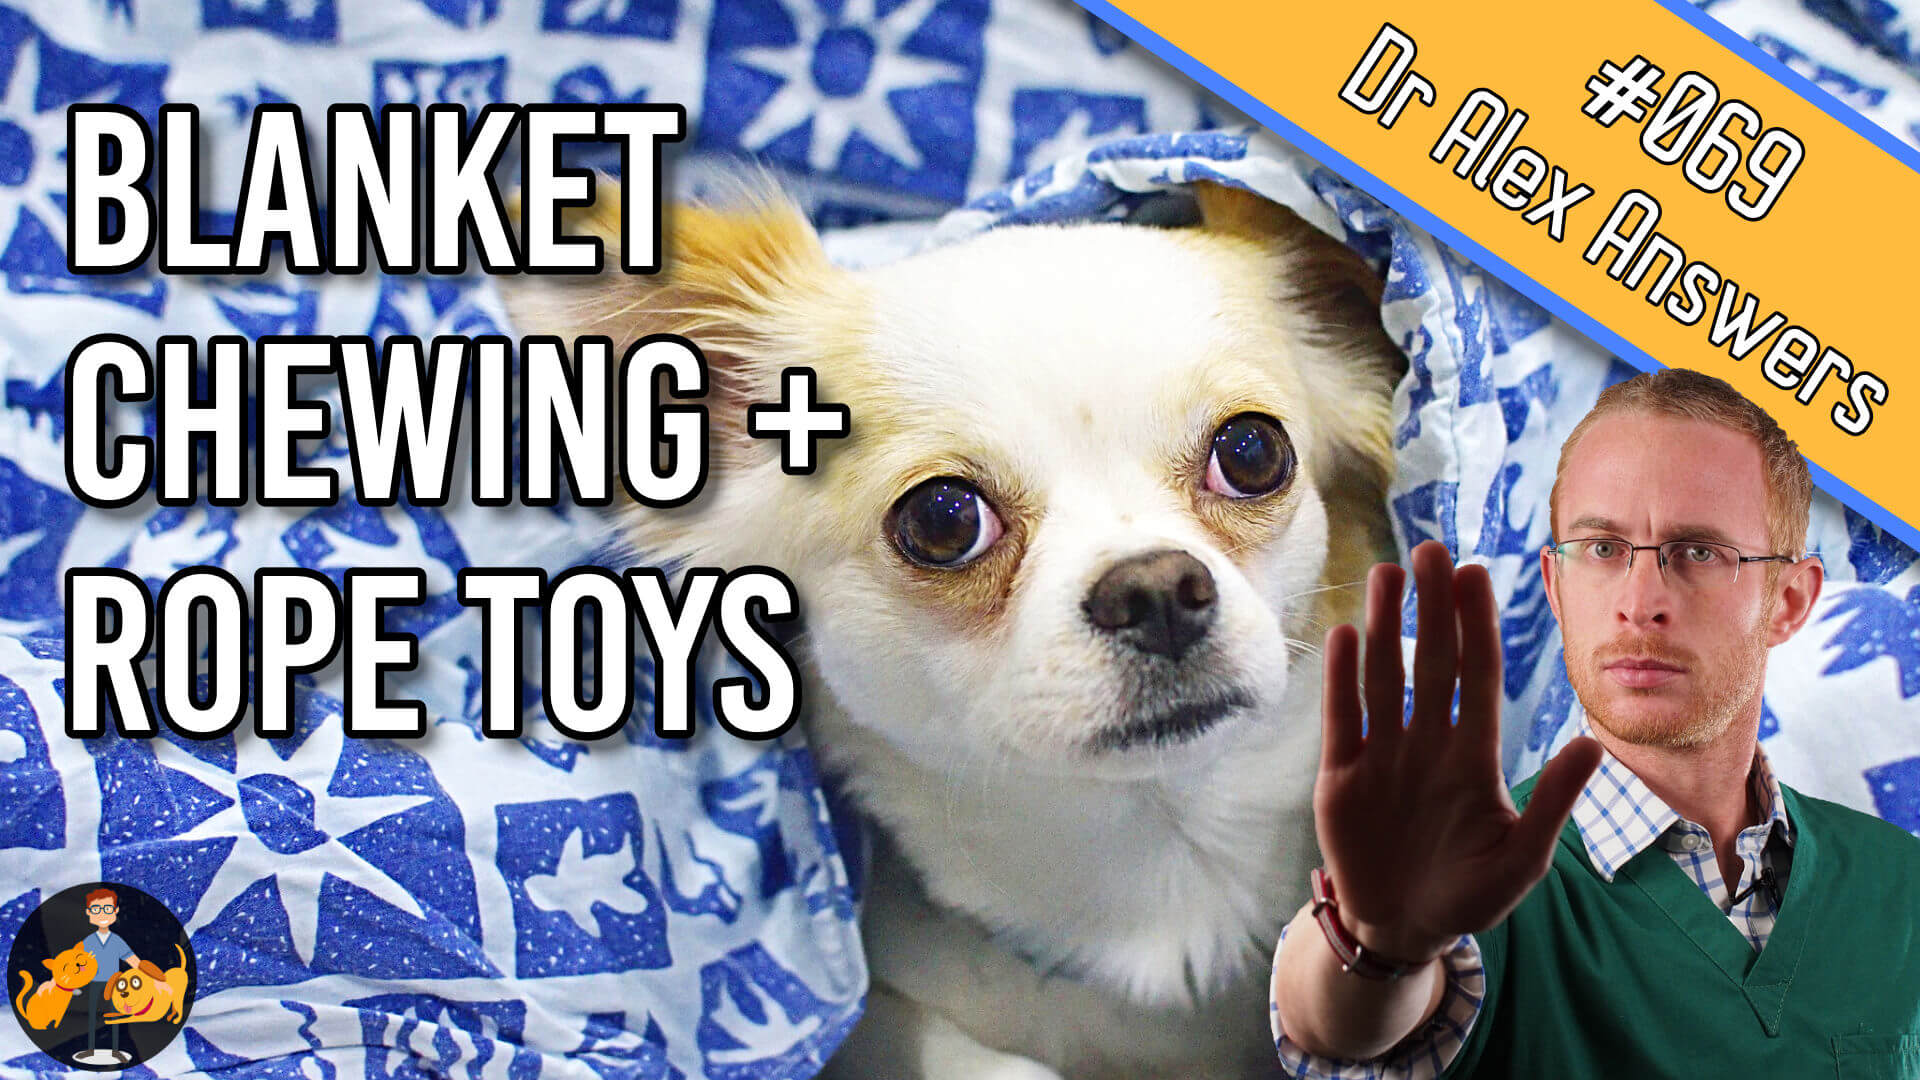 blanket chewing and rope toys in dogs - the risk of a linear foreign body